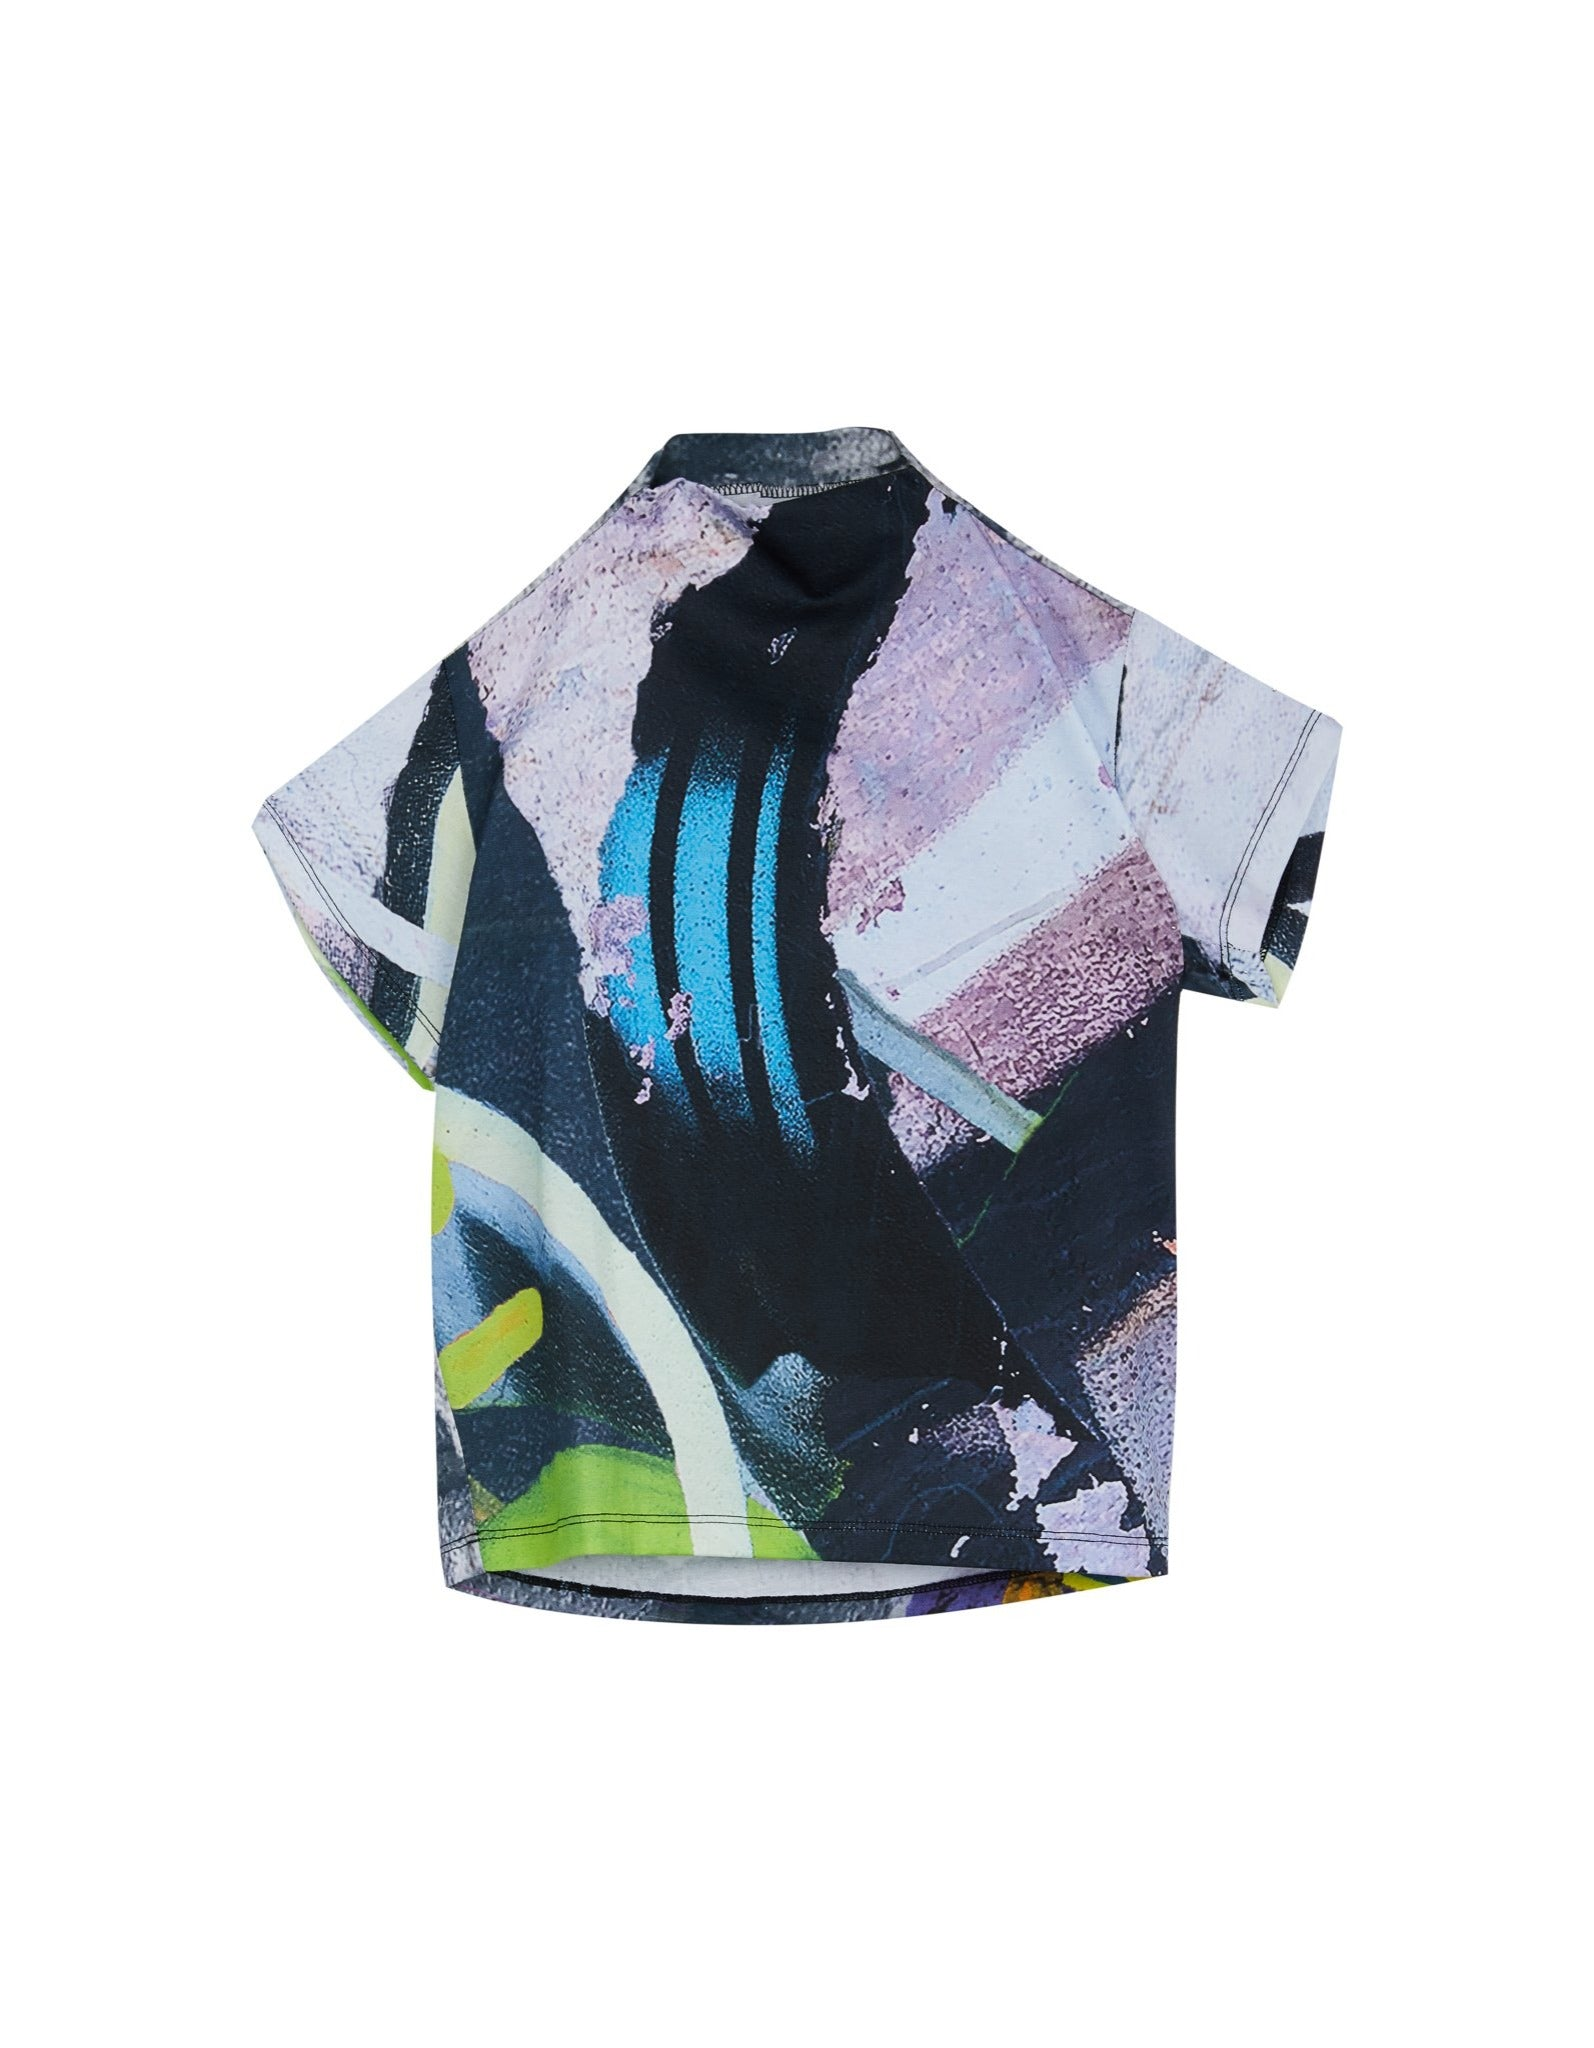 M'A KIDS DRAPED HEM T- SHIRT IN PASTEL PRINT